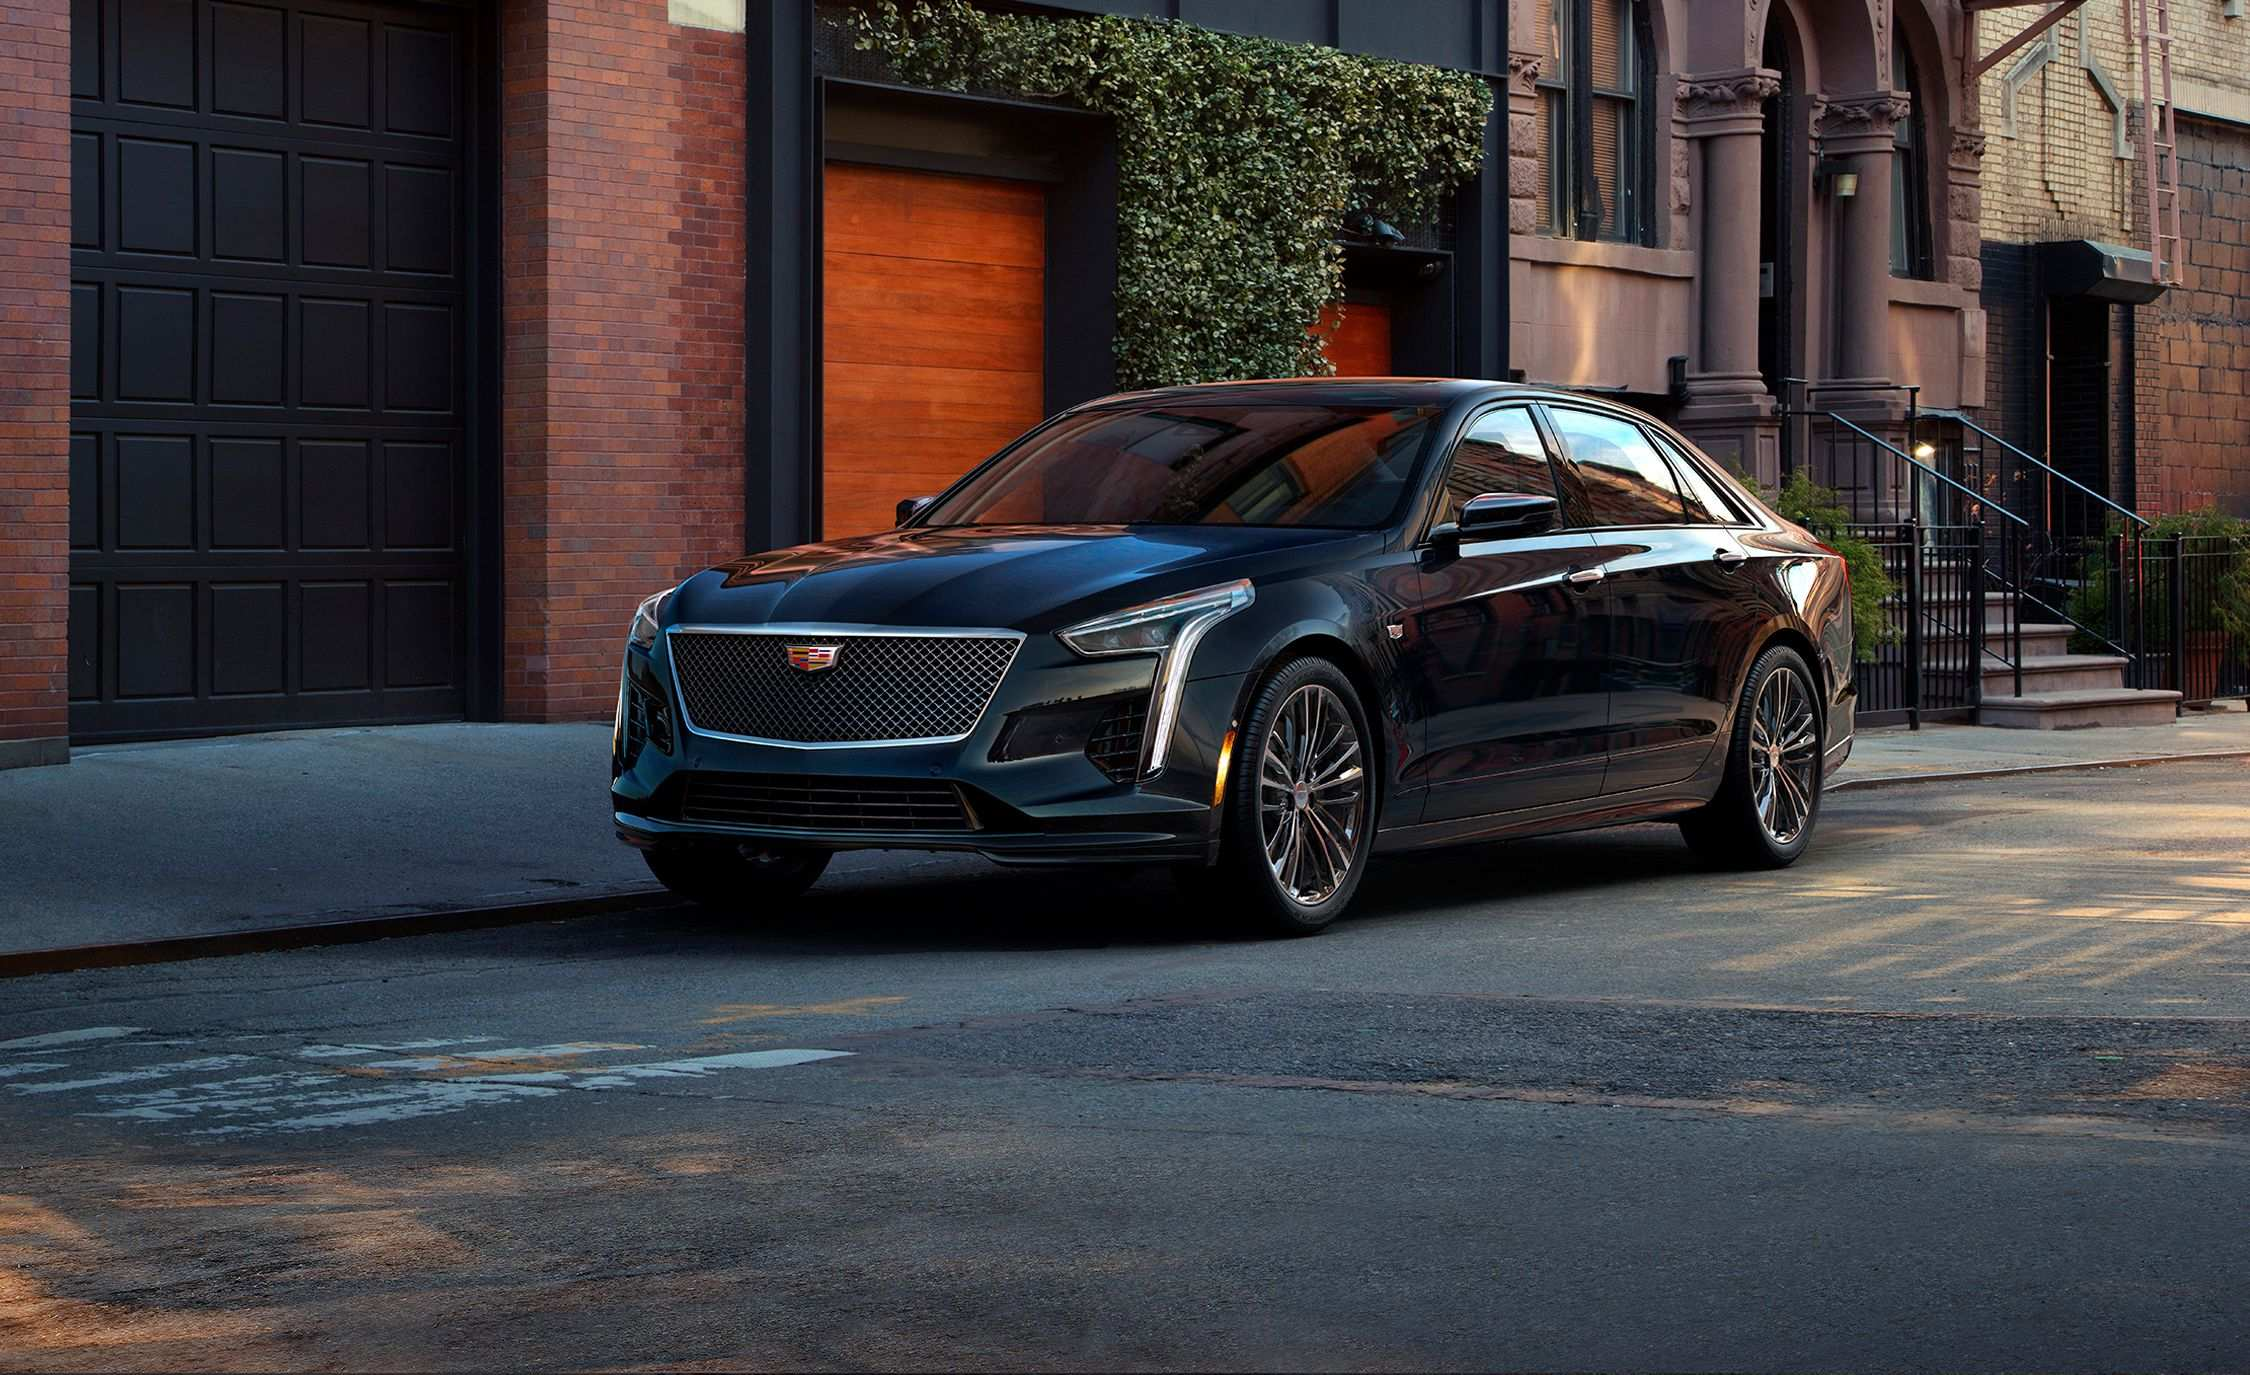 68 Gallery of Best New Cadillac 2019 Models Release Date And Specs Wallpaper for Best New Cadillac 2019 Models Release Date And Specs